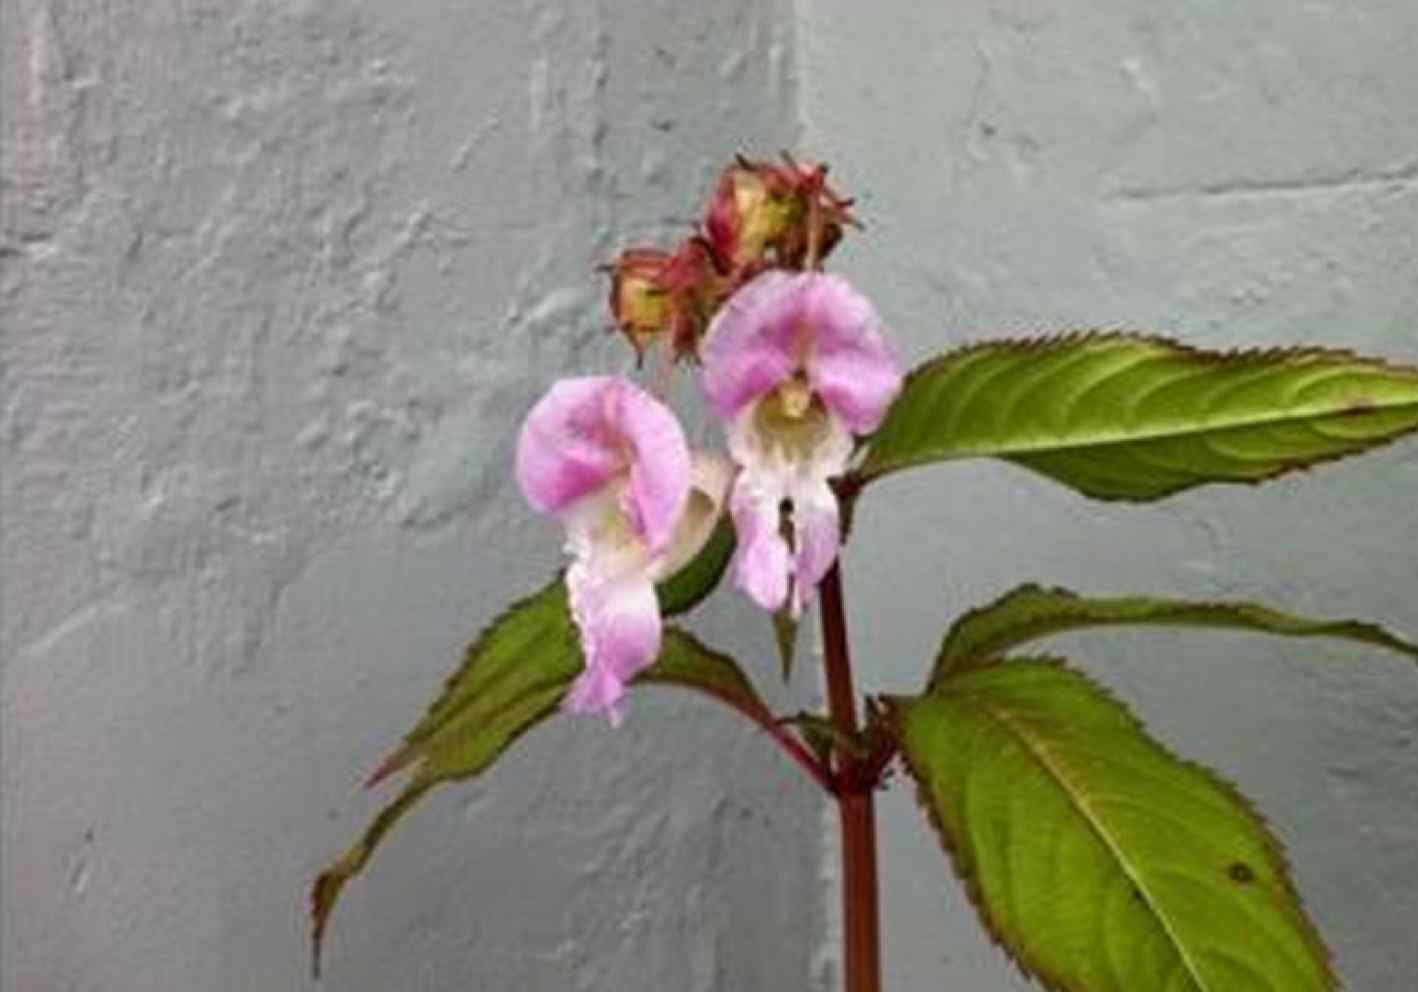 LET NO PLANT GO TO SEED! Help us remove the Himalayan balsam